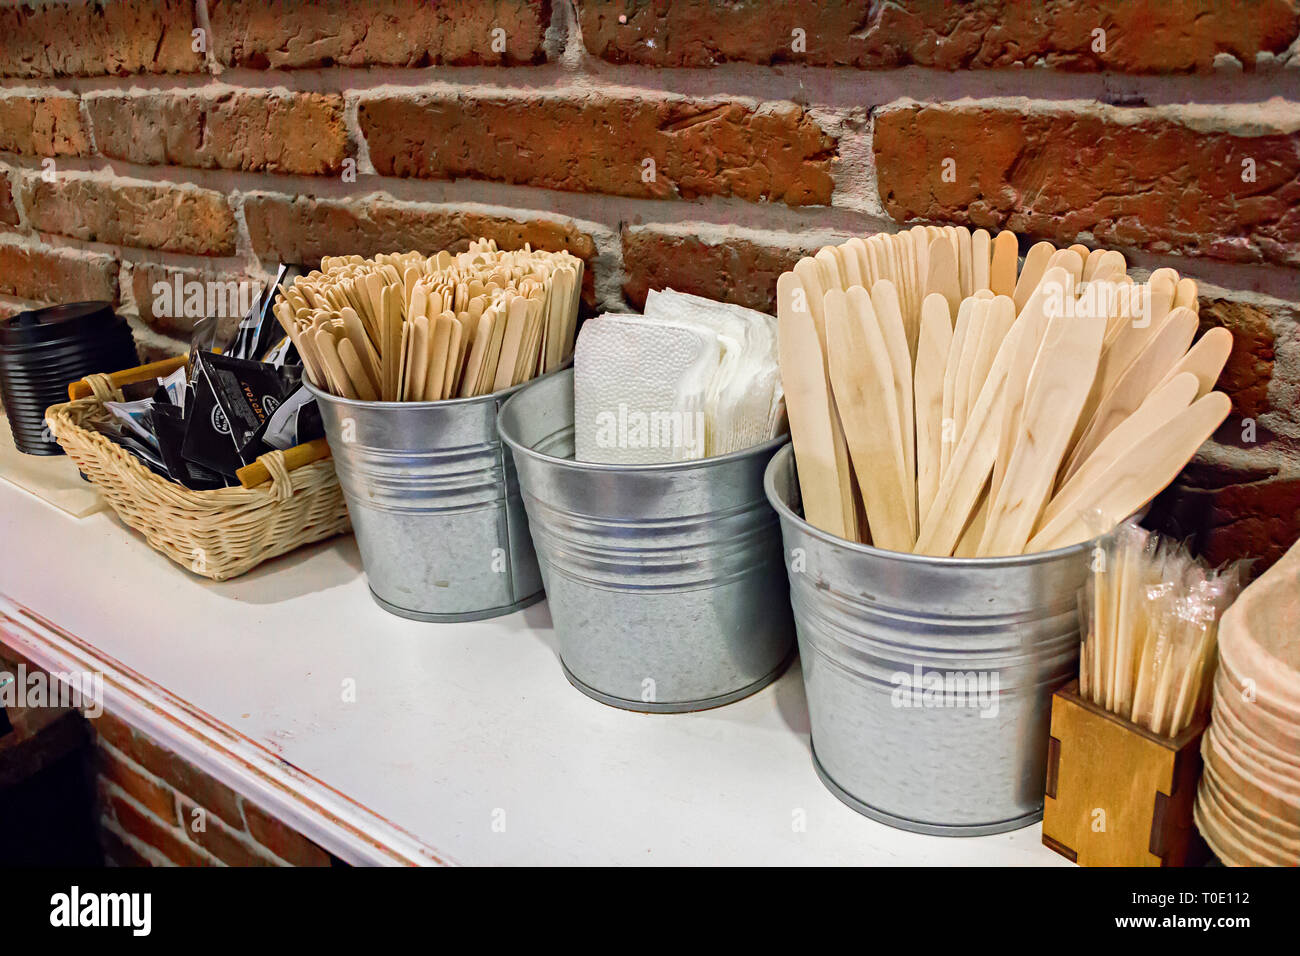 Close-up view of various disposable wooden sticks, wooden spoon, tooth sticks, cup covers, Take away boxes, napkins and sugar bags on wooden counter - Stock Image